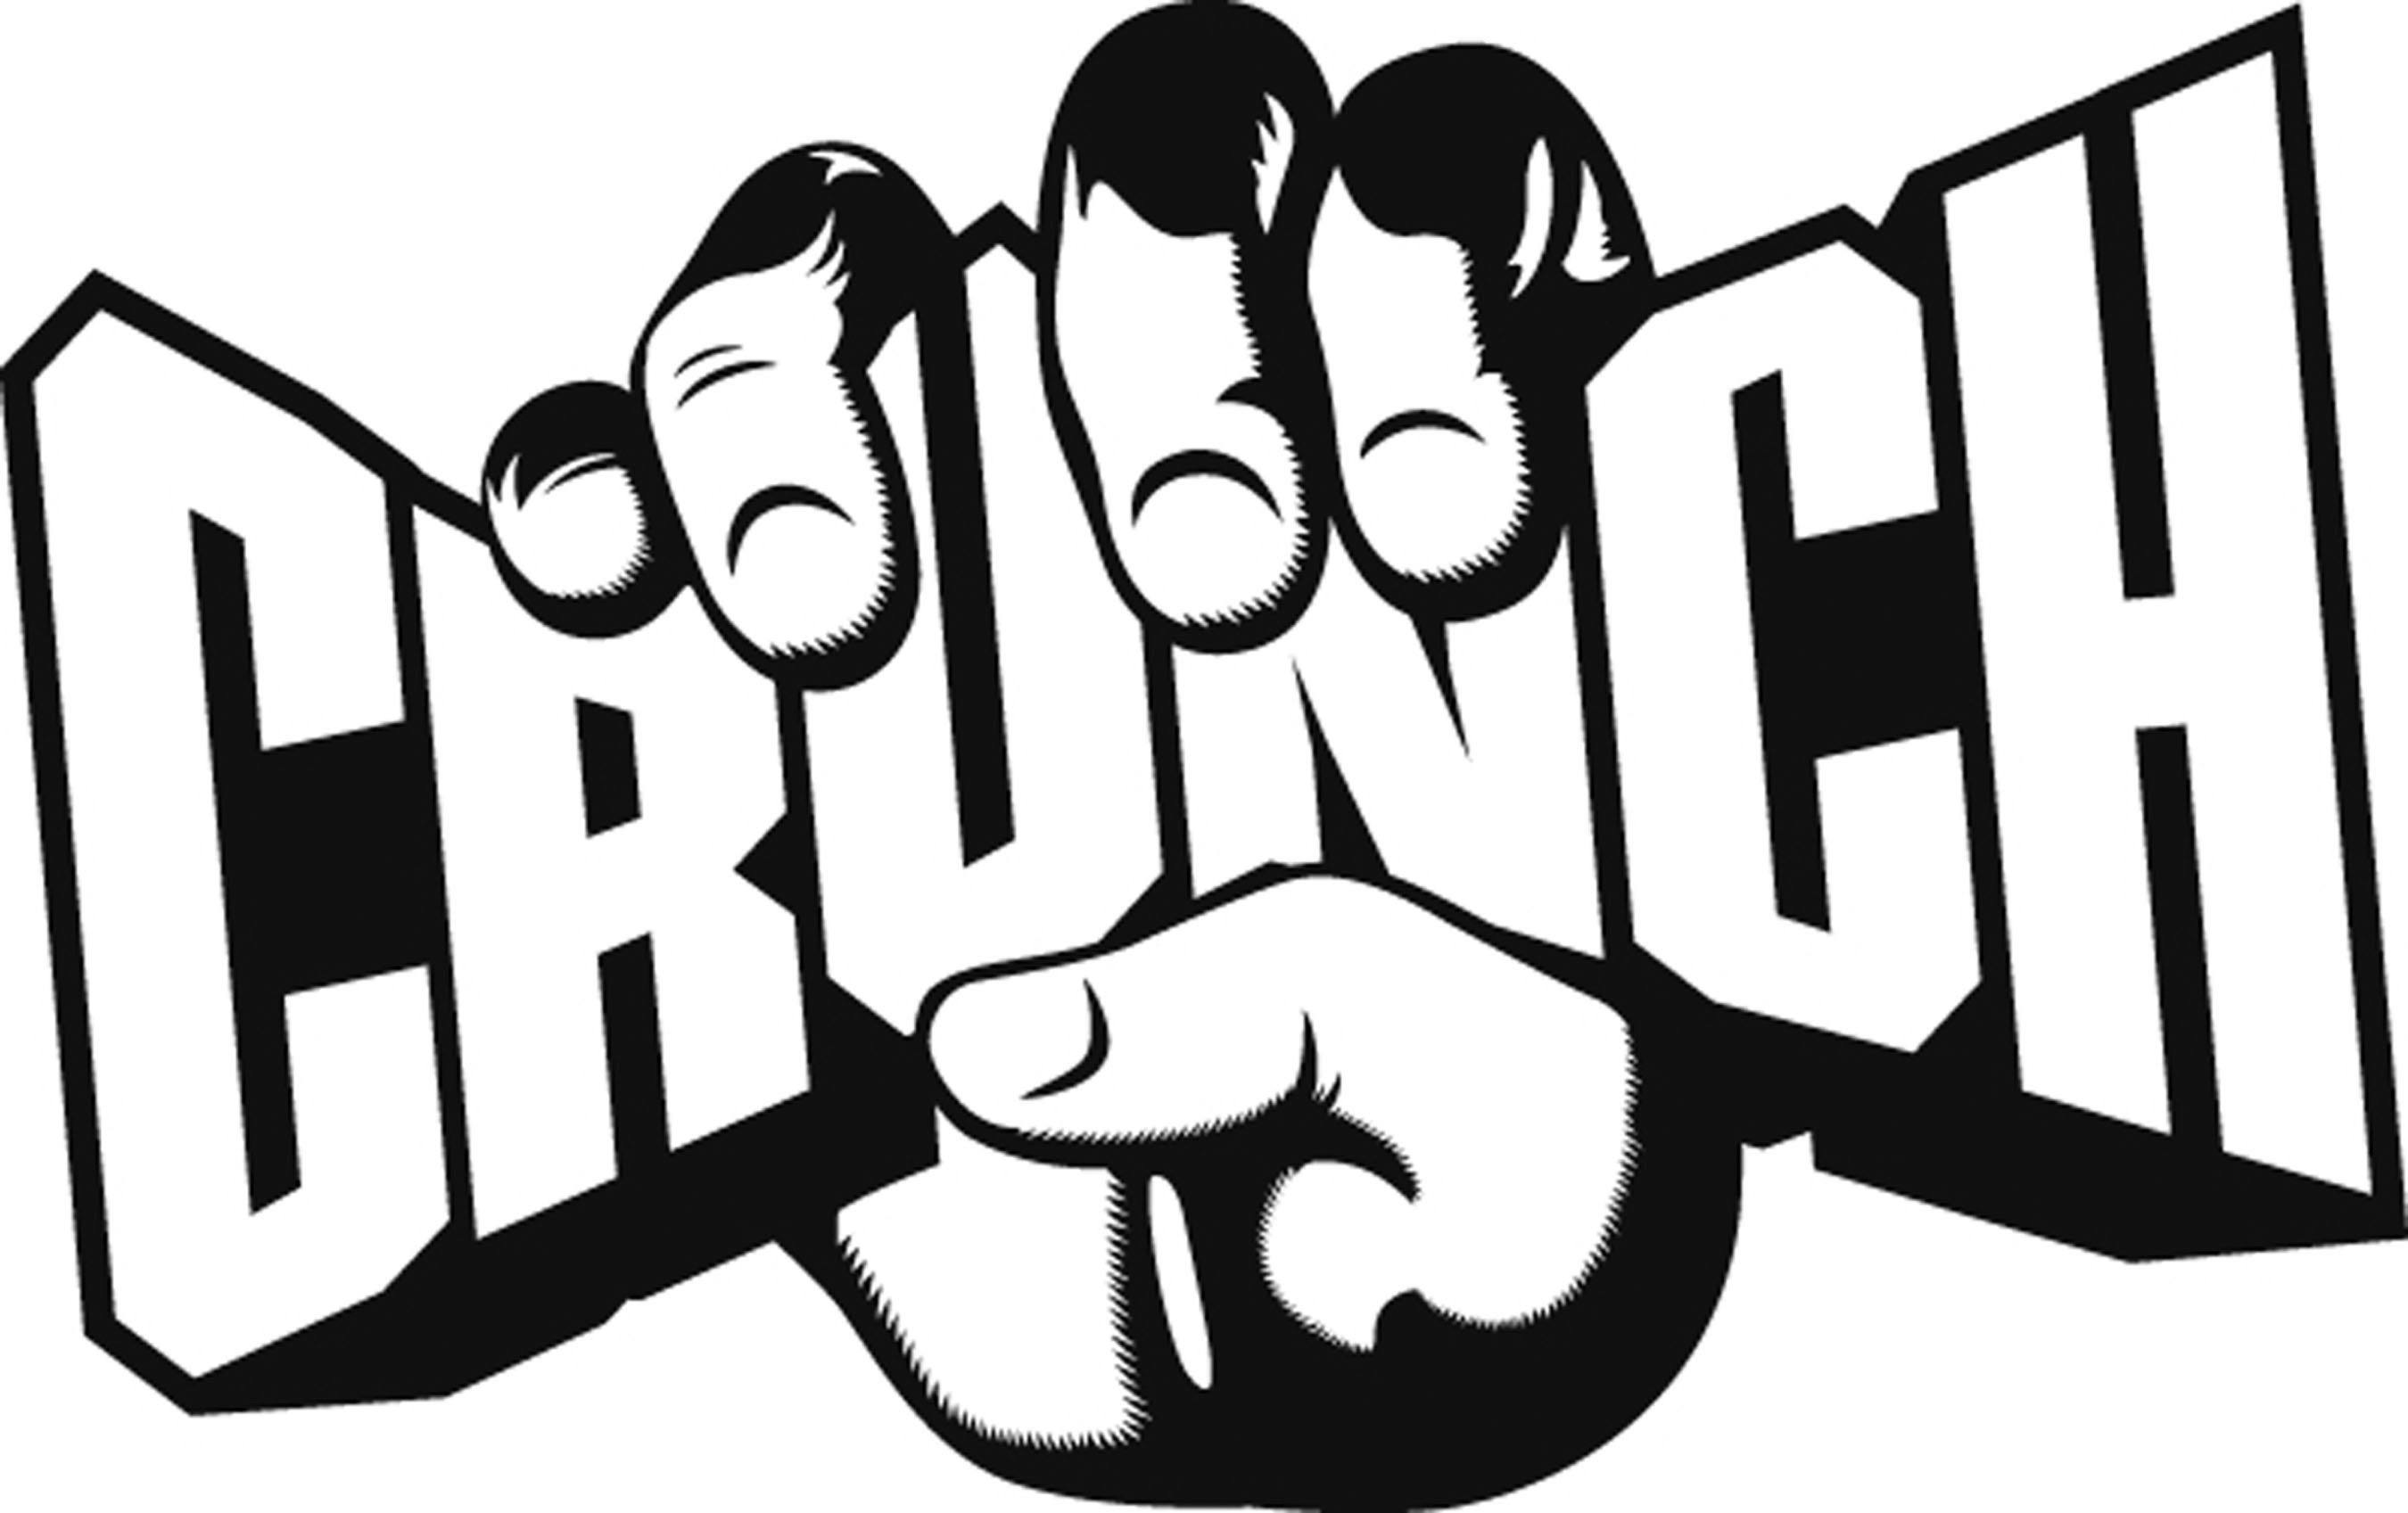 Crunch Franchise Announces its Newest Location in Fairfield.